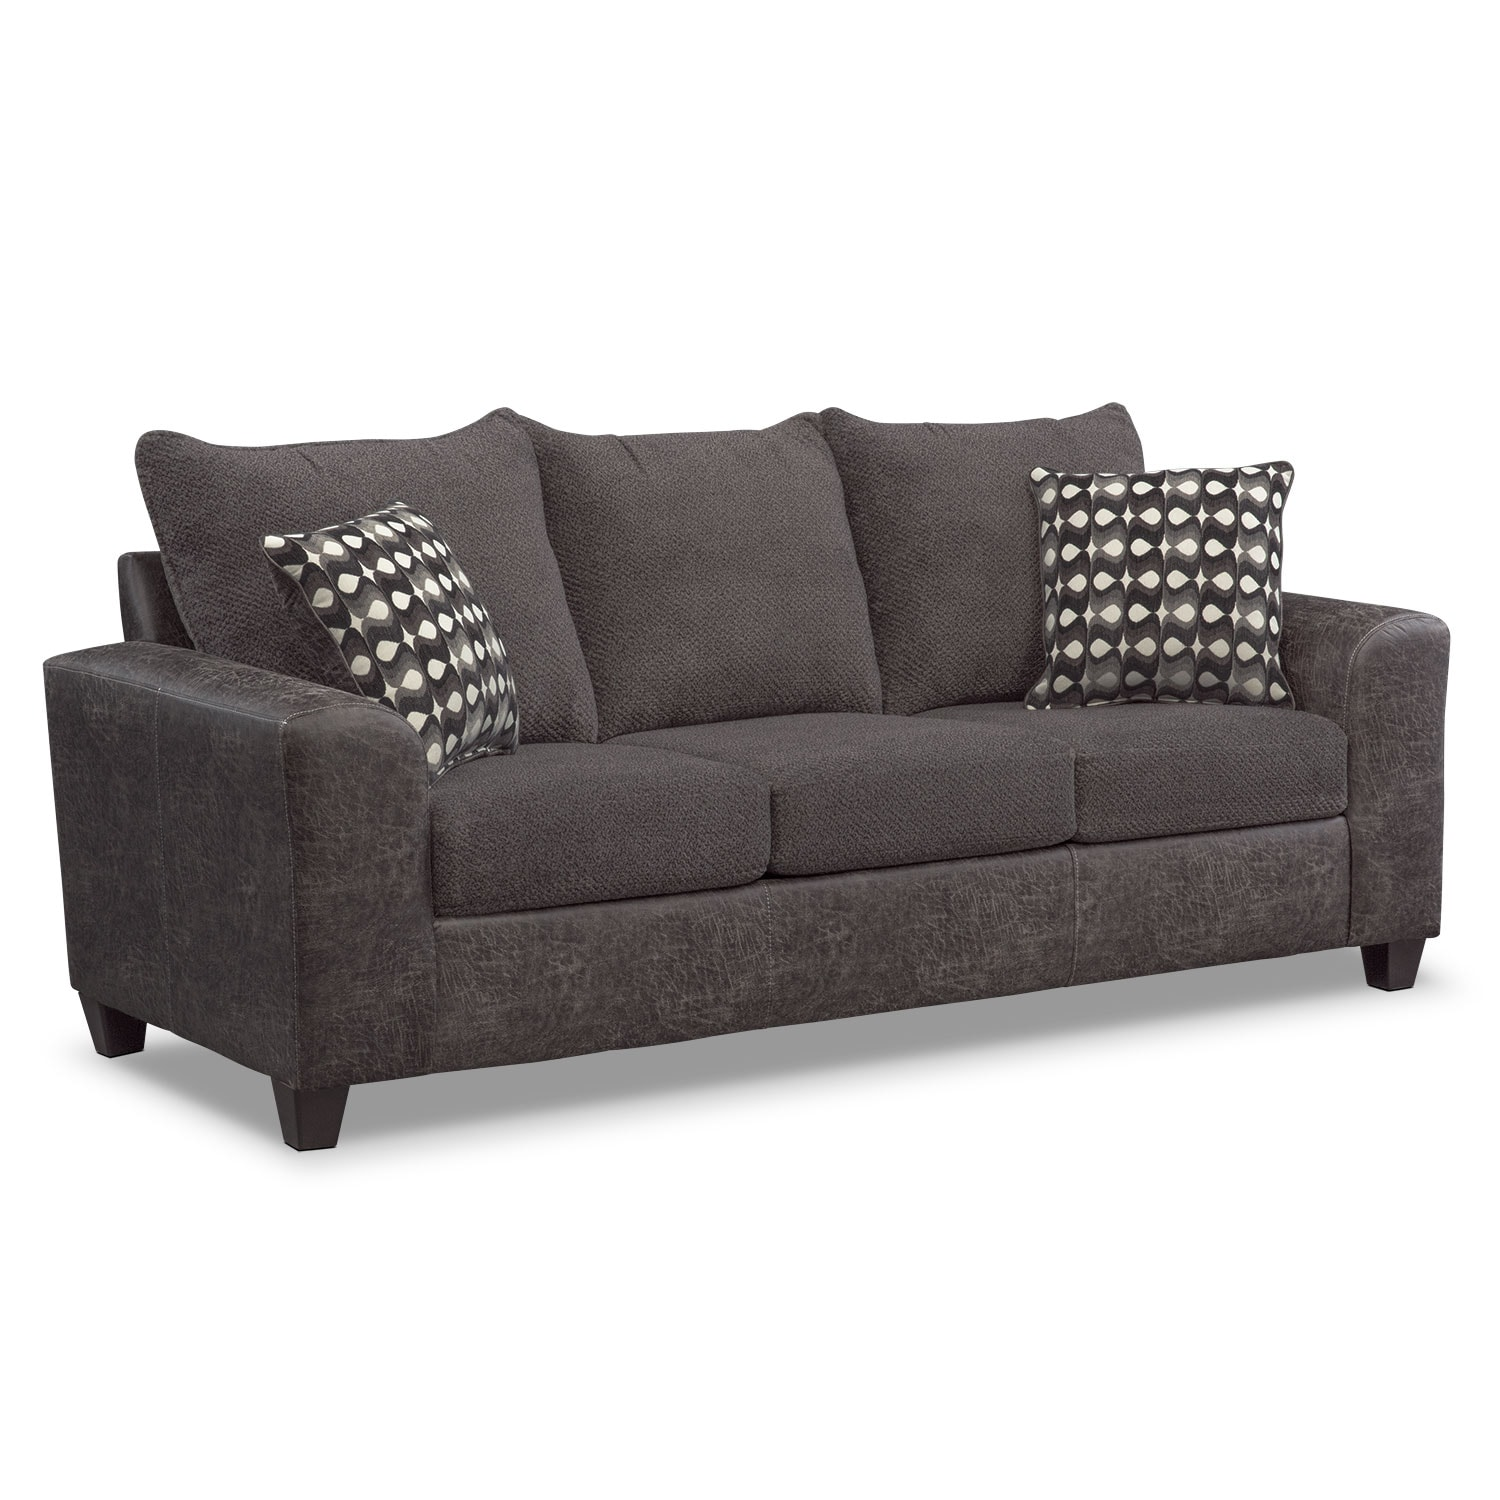 Factory Outlet Sofas Sofa MenzilperdeNet